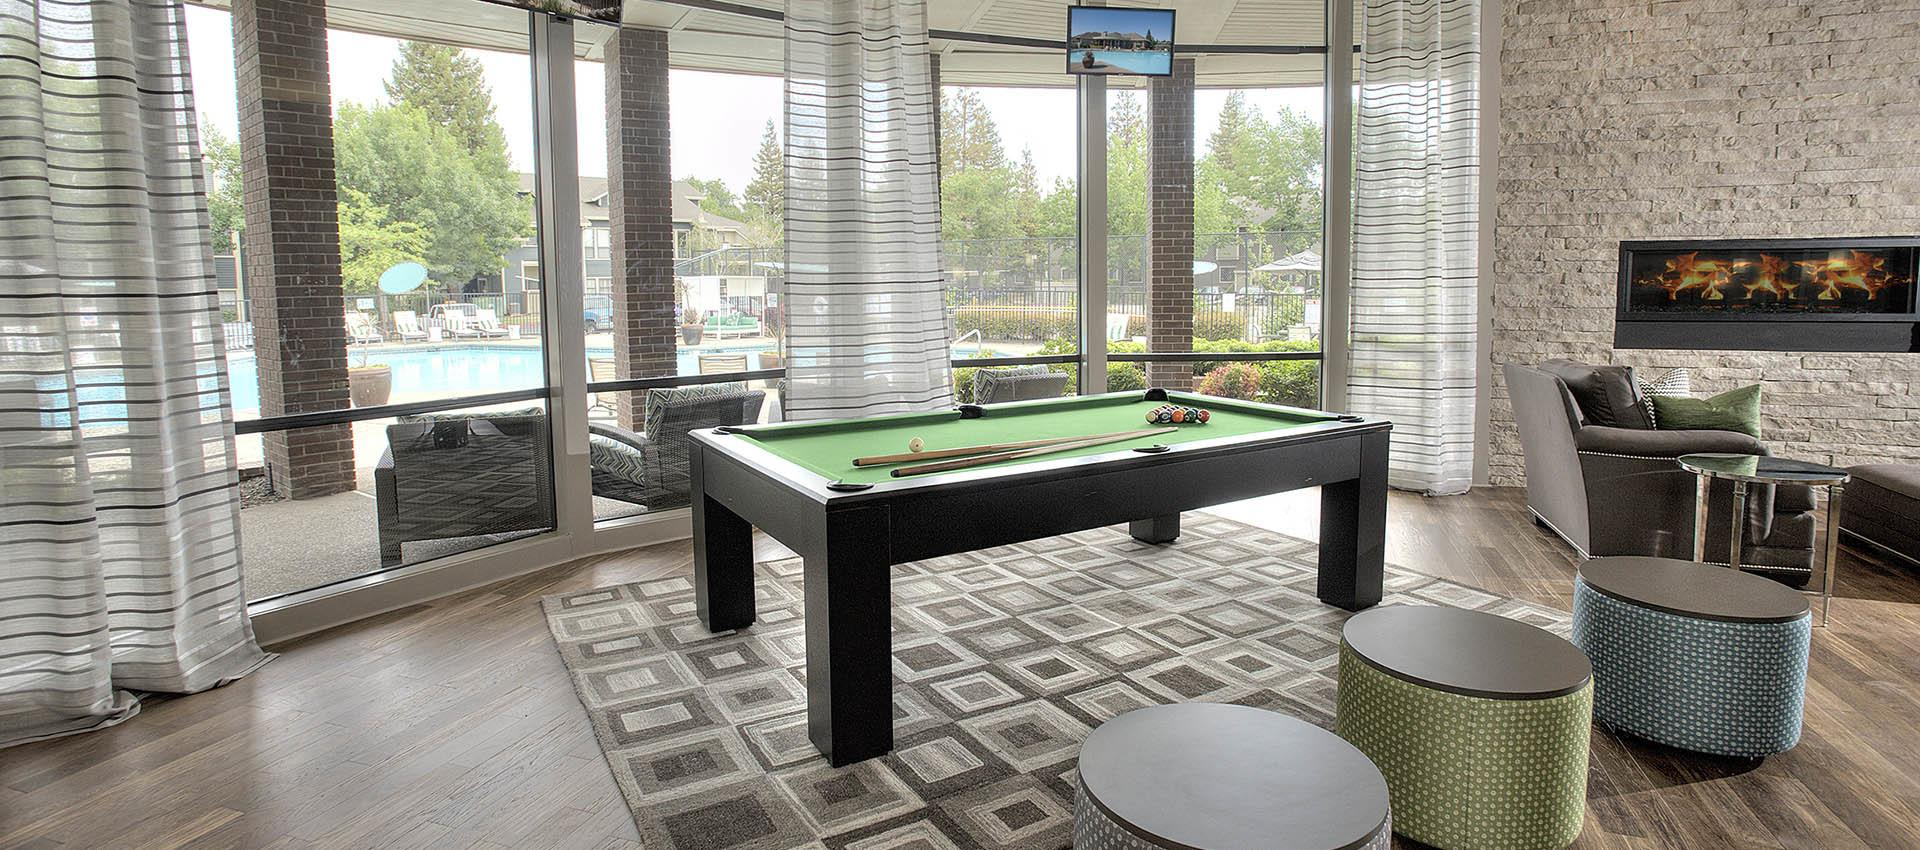 Billiards at Deer Valley Apartment Homes in Roseville, California